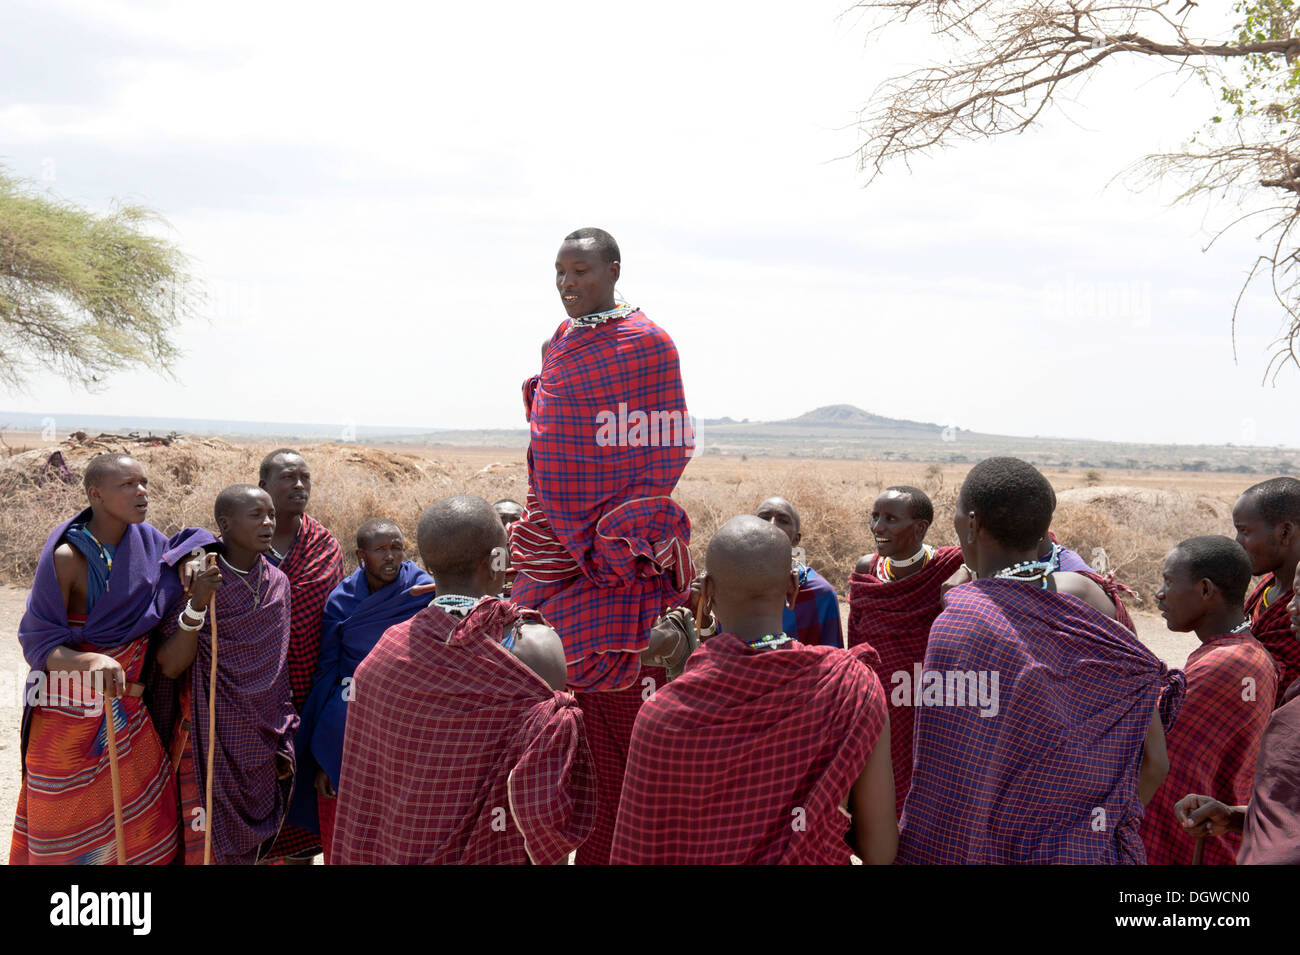 Ethnology, group of men, man jumping while dancing, Masai, village of Kiloki, Savannah, Ngorongoro Conservation Area - Stock Image